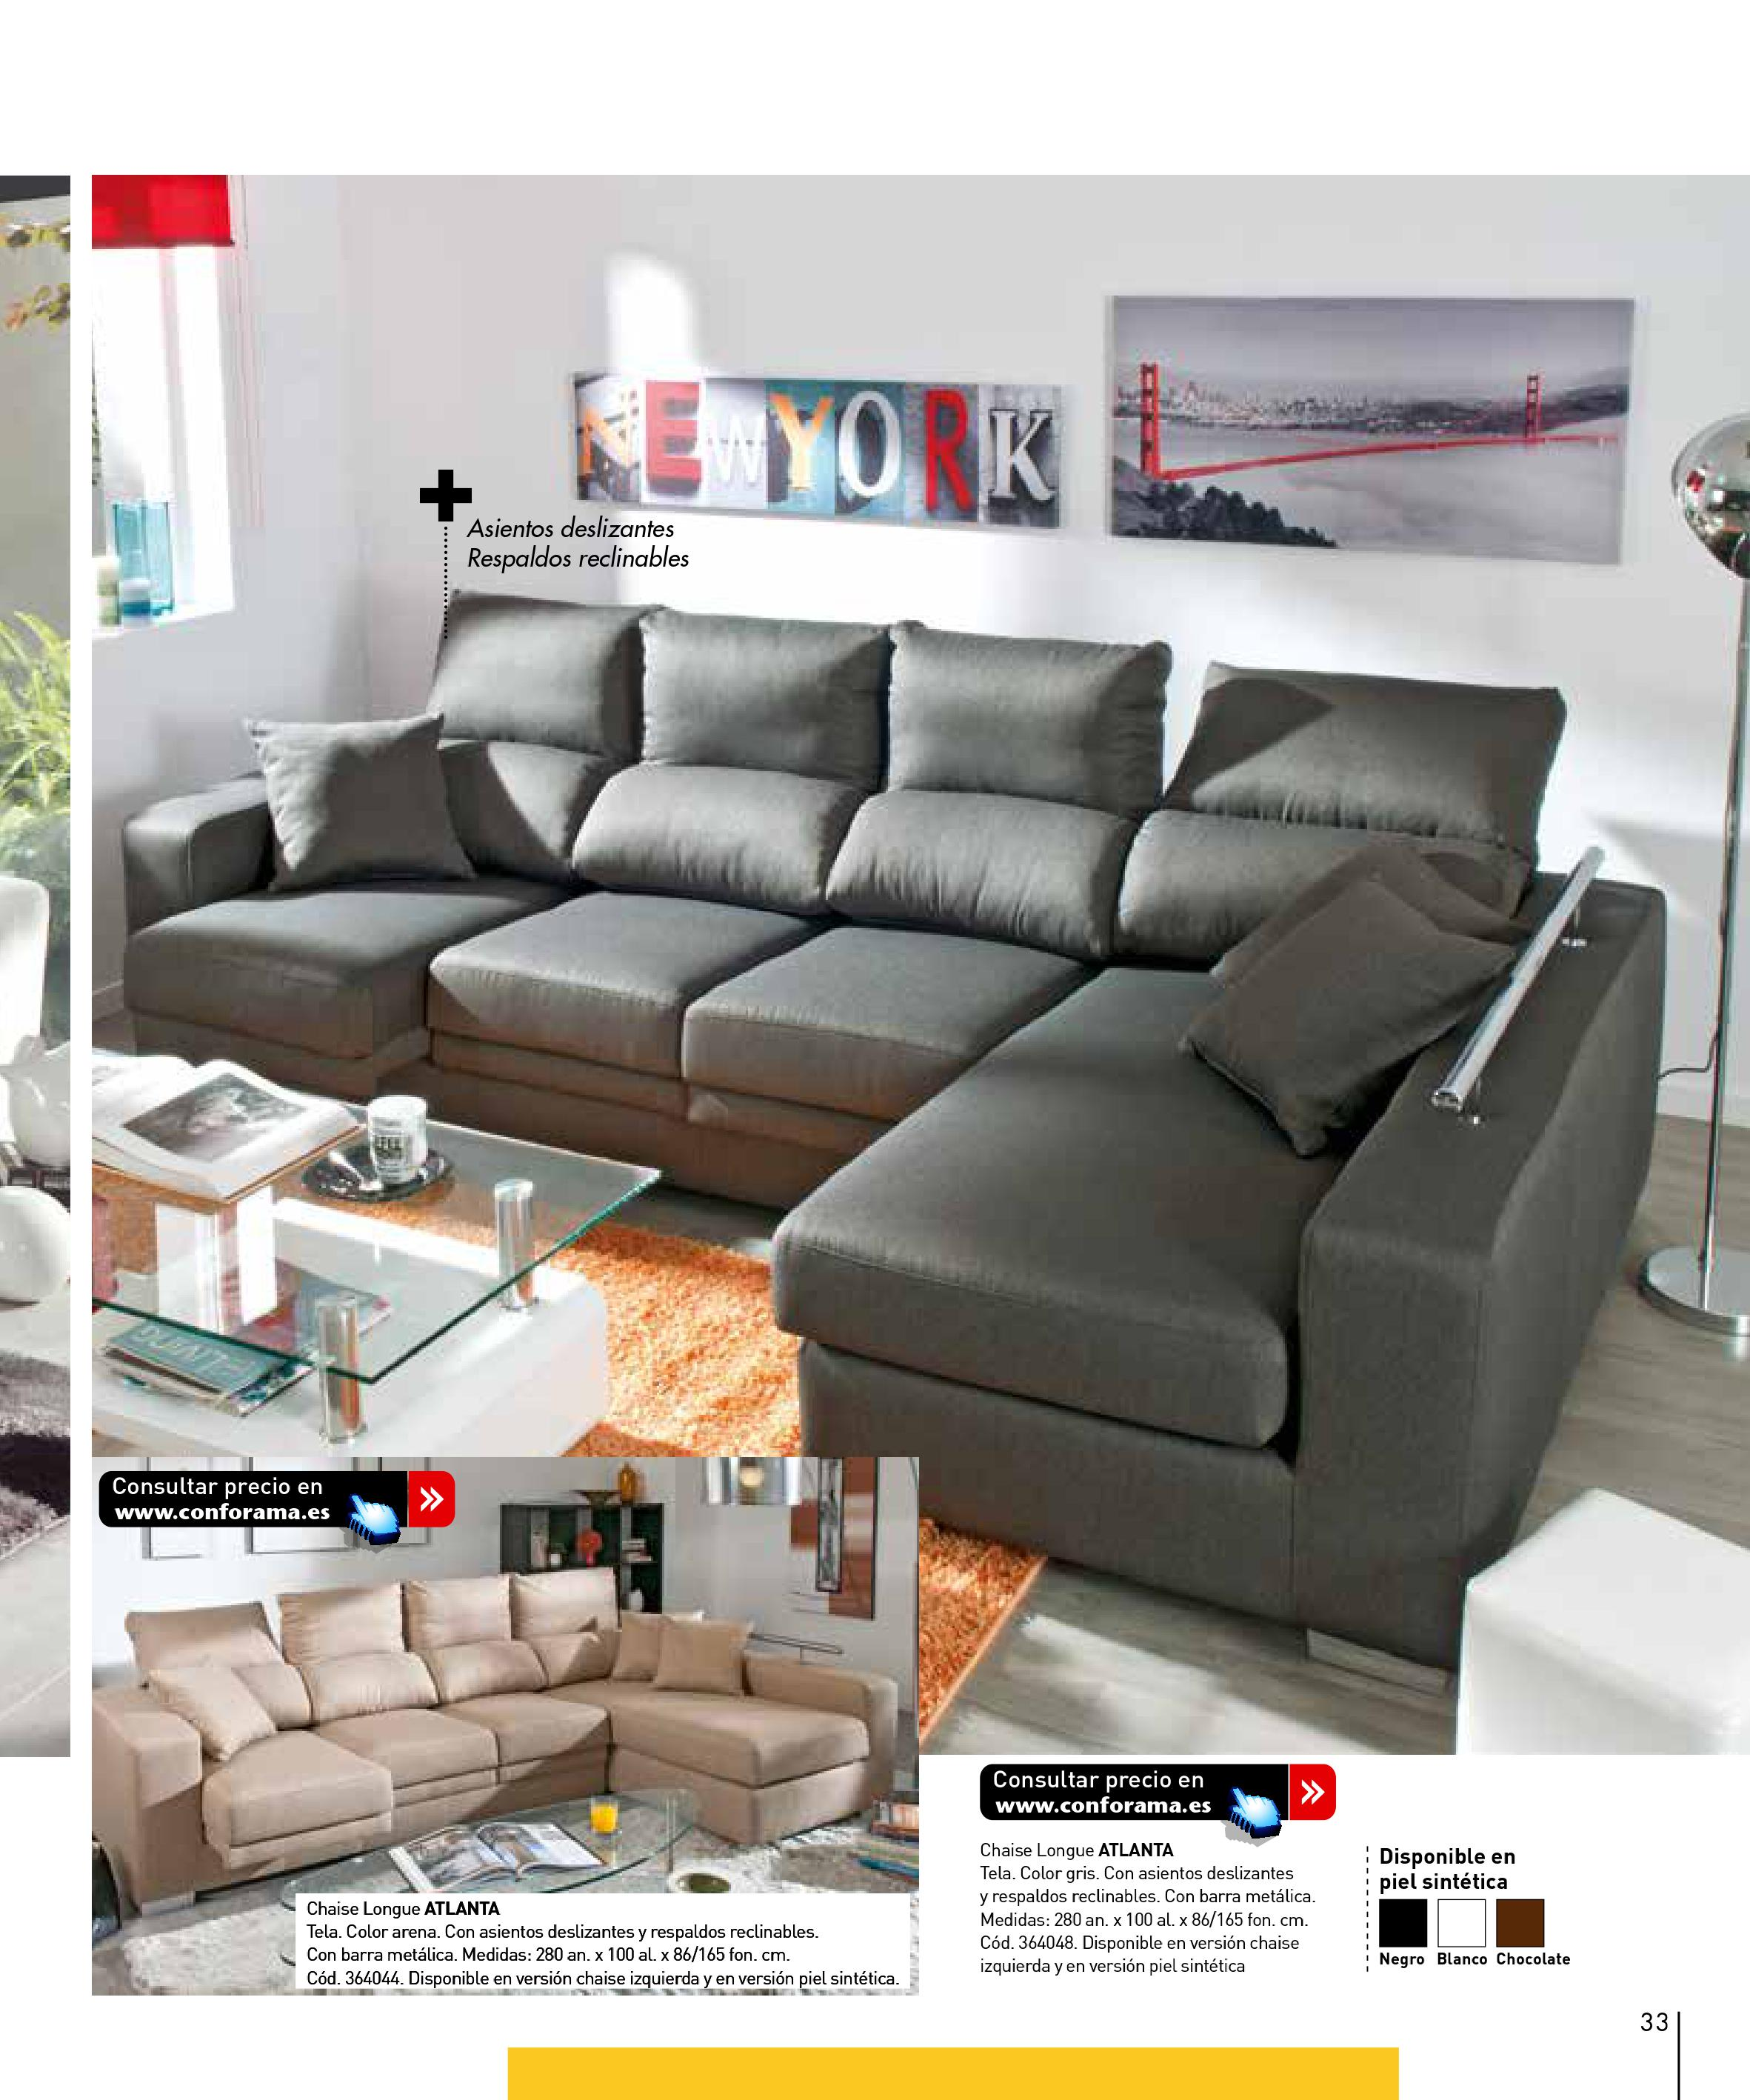 Sofas conforama 201533 for Sofas conforama catalogo